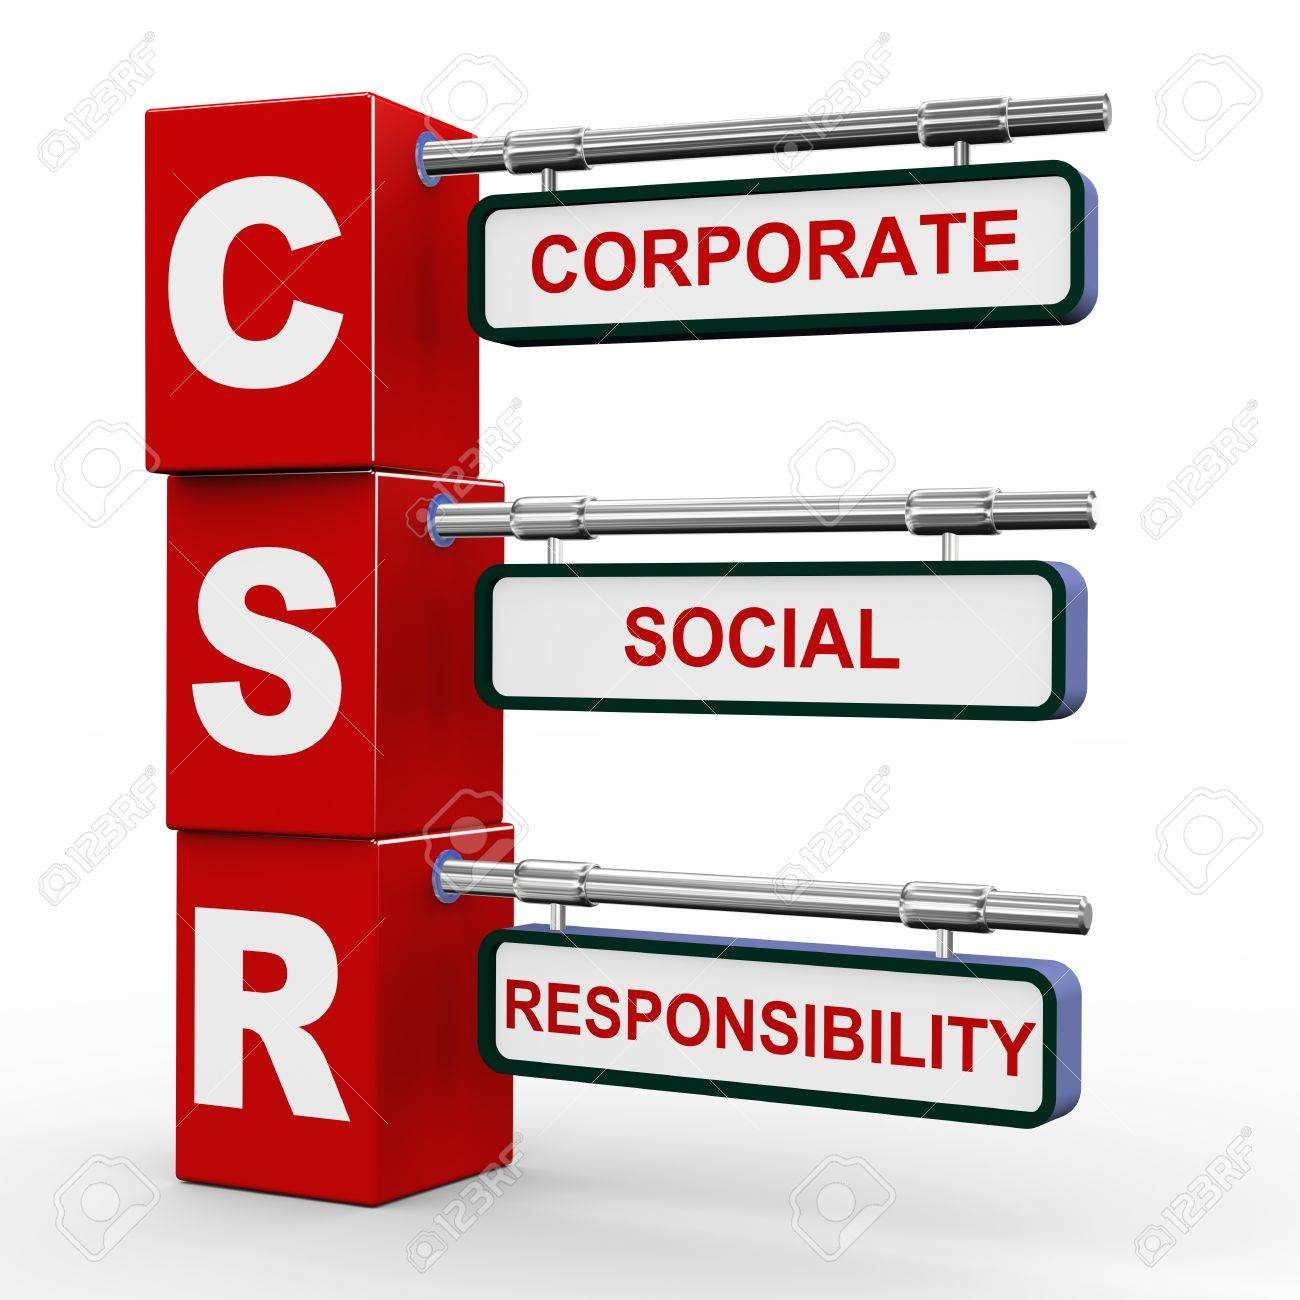 3d illustration of modern roadsign cubes signpost of csr - Corporate Social Responsibility Stock Photo - 17915035